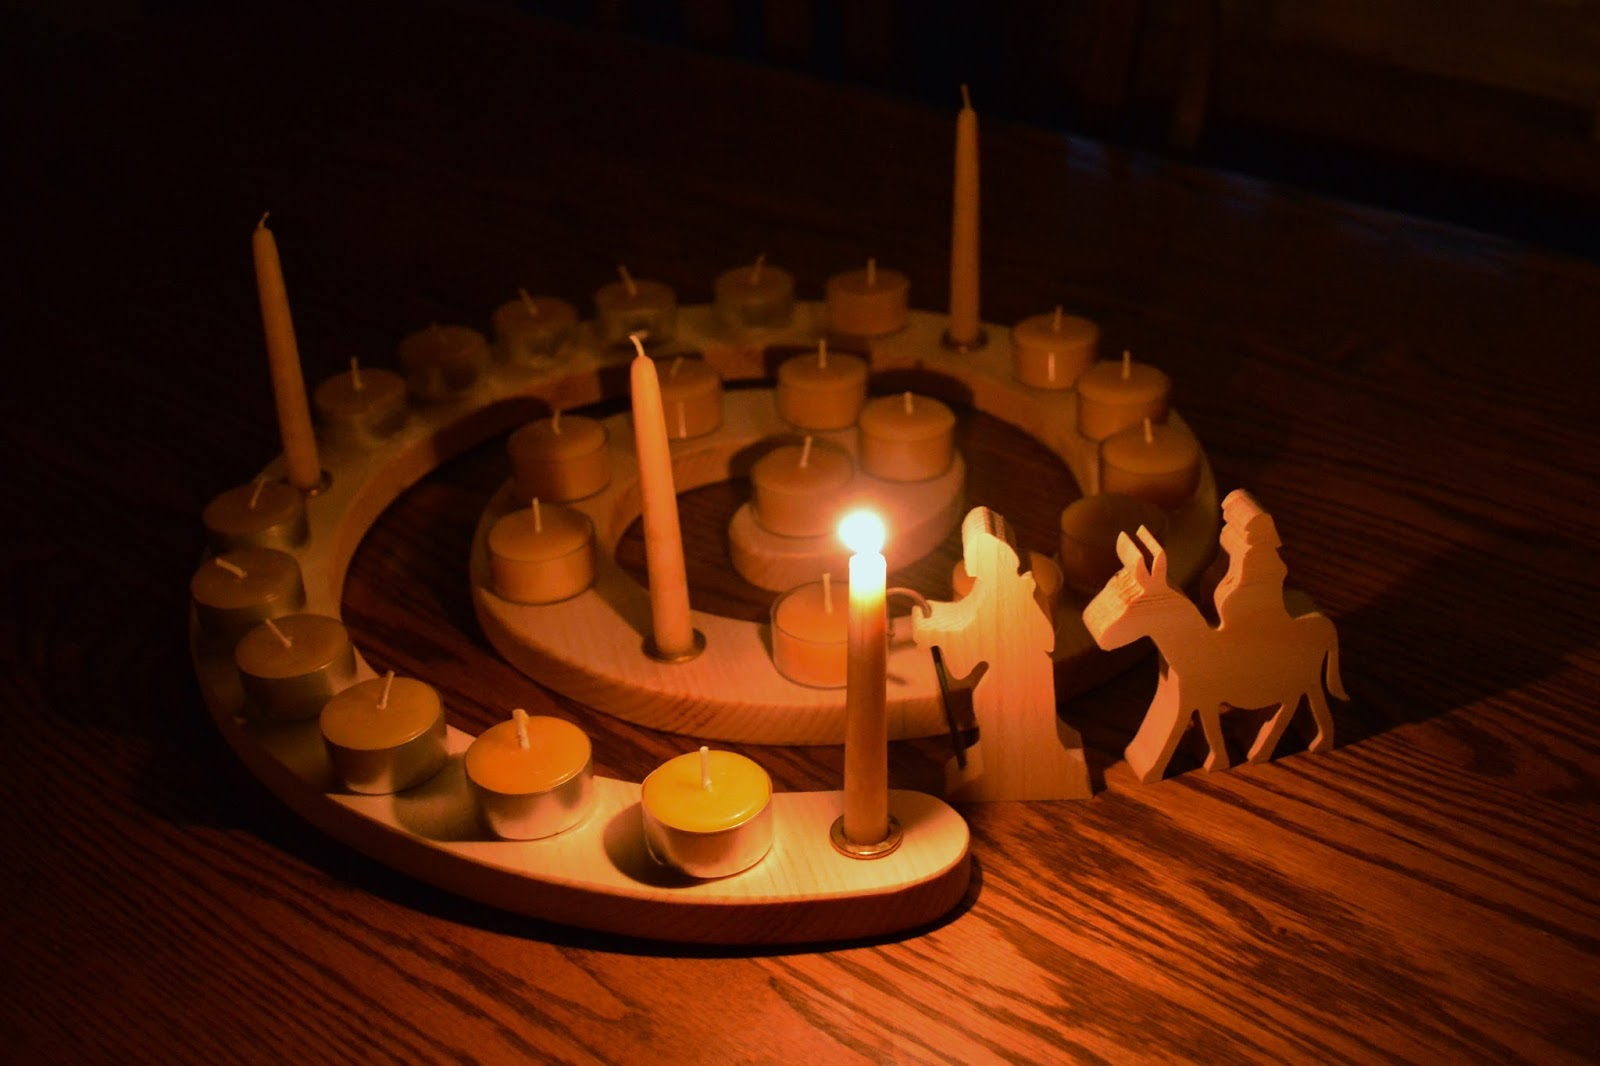 On Saturday night once my little man was sound asleep I spent time preparing our home for Advent. Our dining table was cleared and placed in the center ... & Mothering with Mindfulness : The First Light of Advent